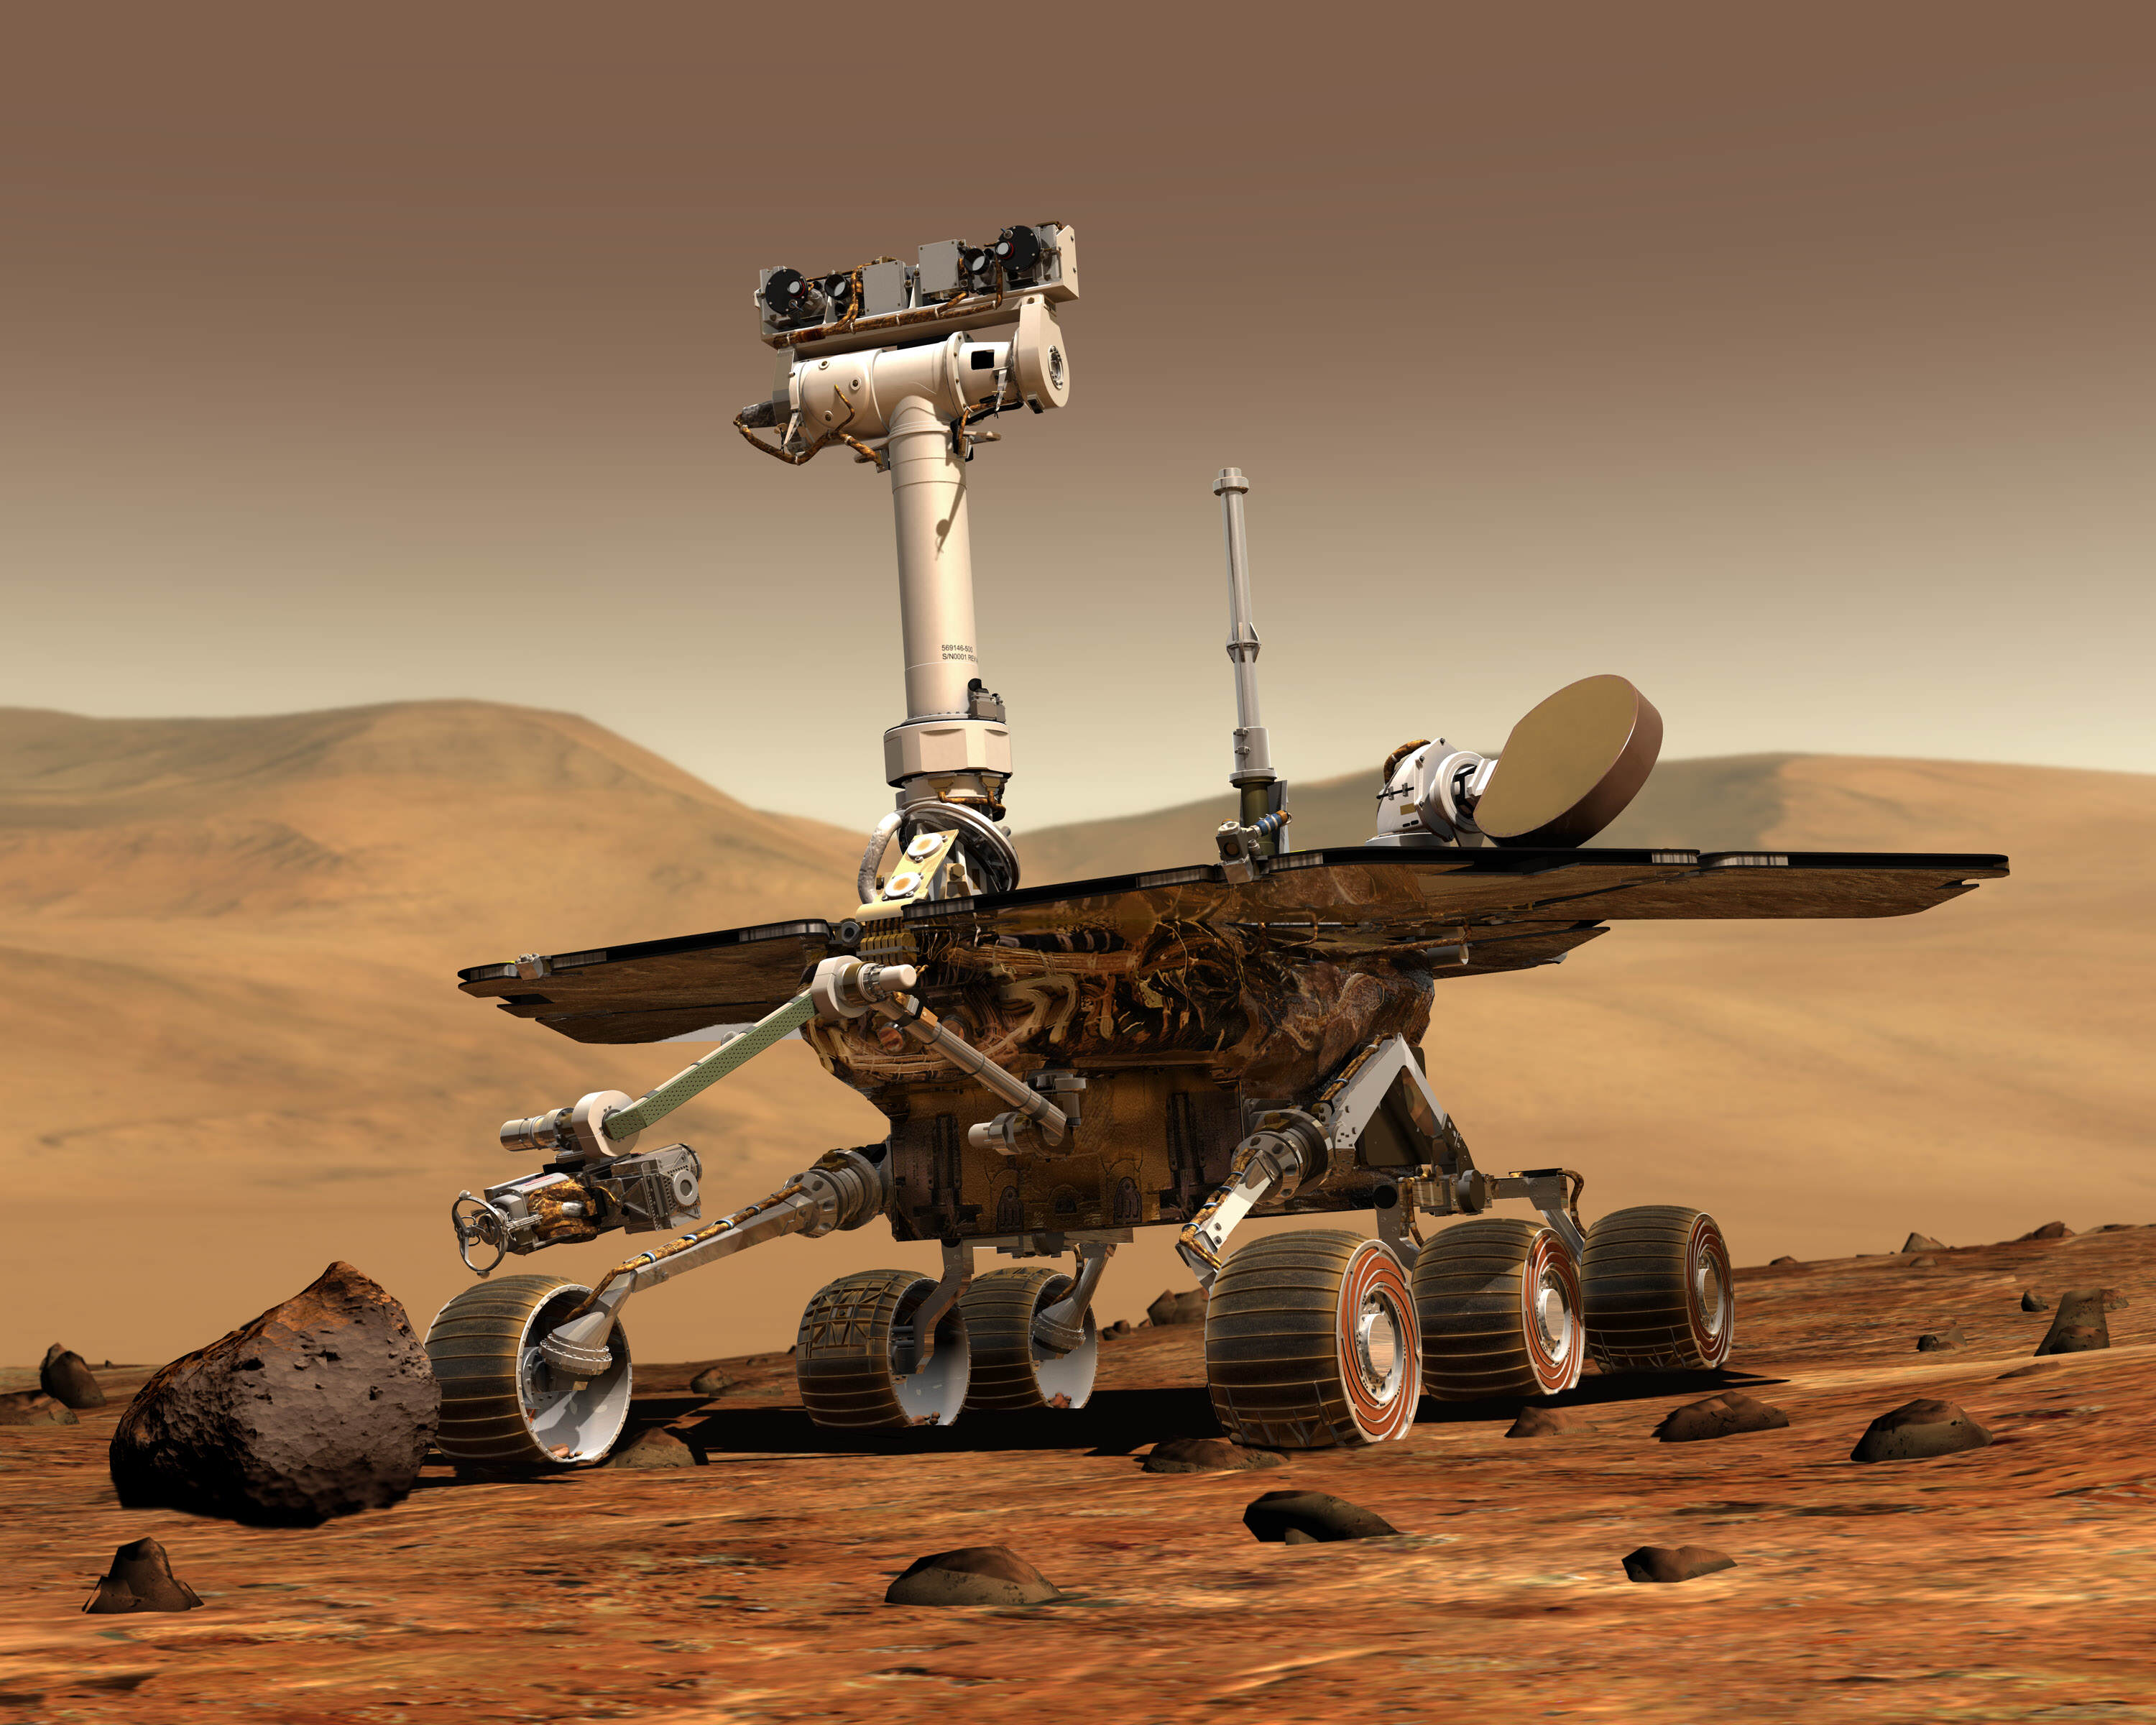 Europe And Russia To Go On Alien Hunting Mission To Find Life On Mars rover